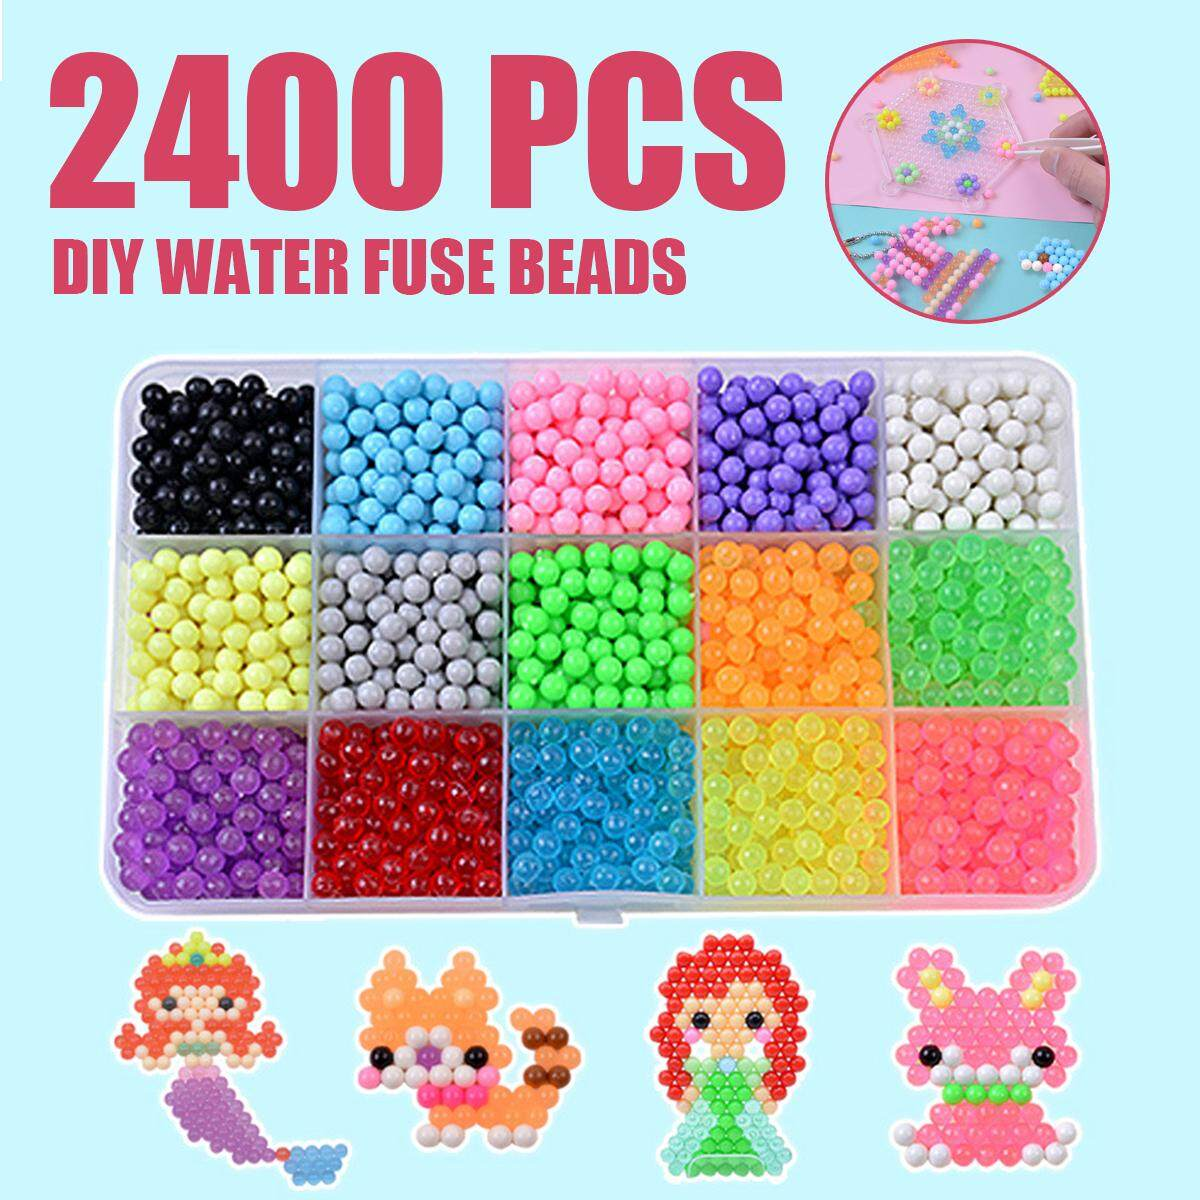 2400pcs Diy Handmade Boy Girl Toy Magic Water Mist Magic Beads Water Sticky Beads Spell Bean Bean Magic Beads By Freebang.